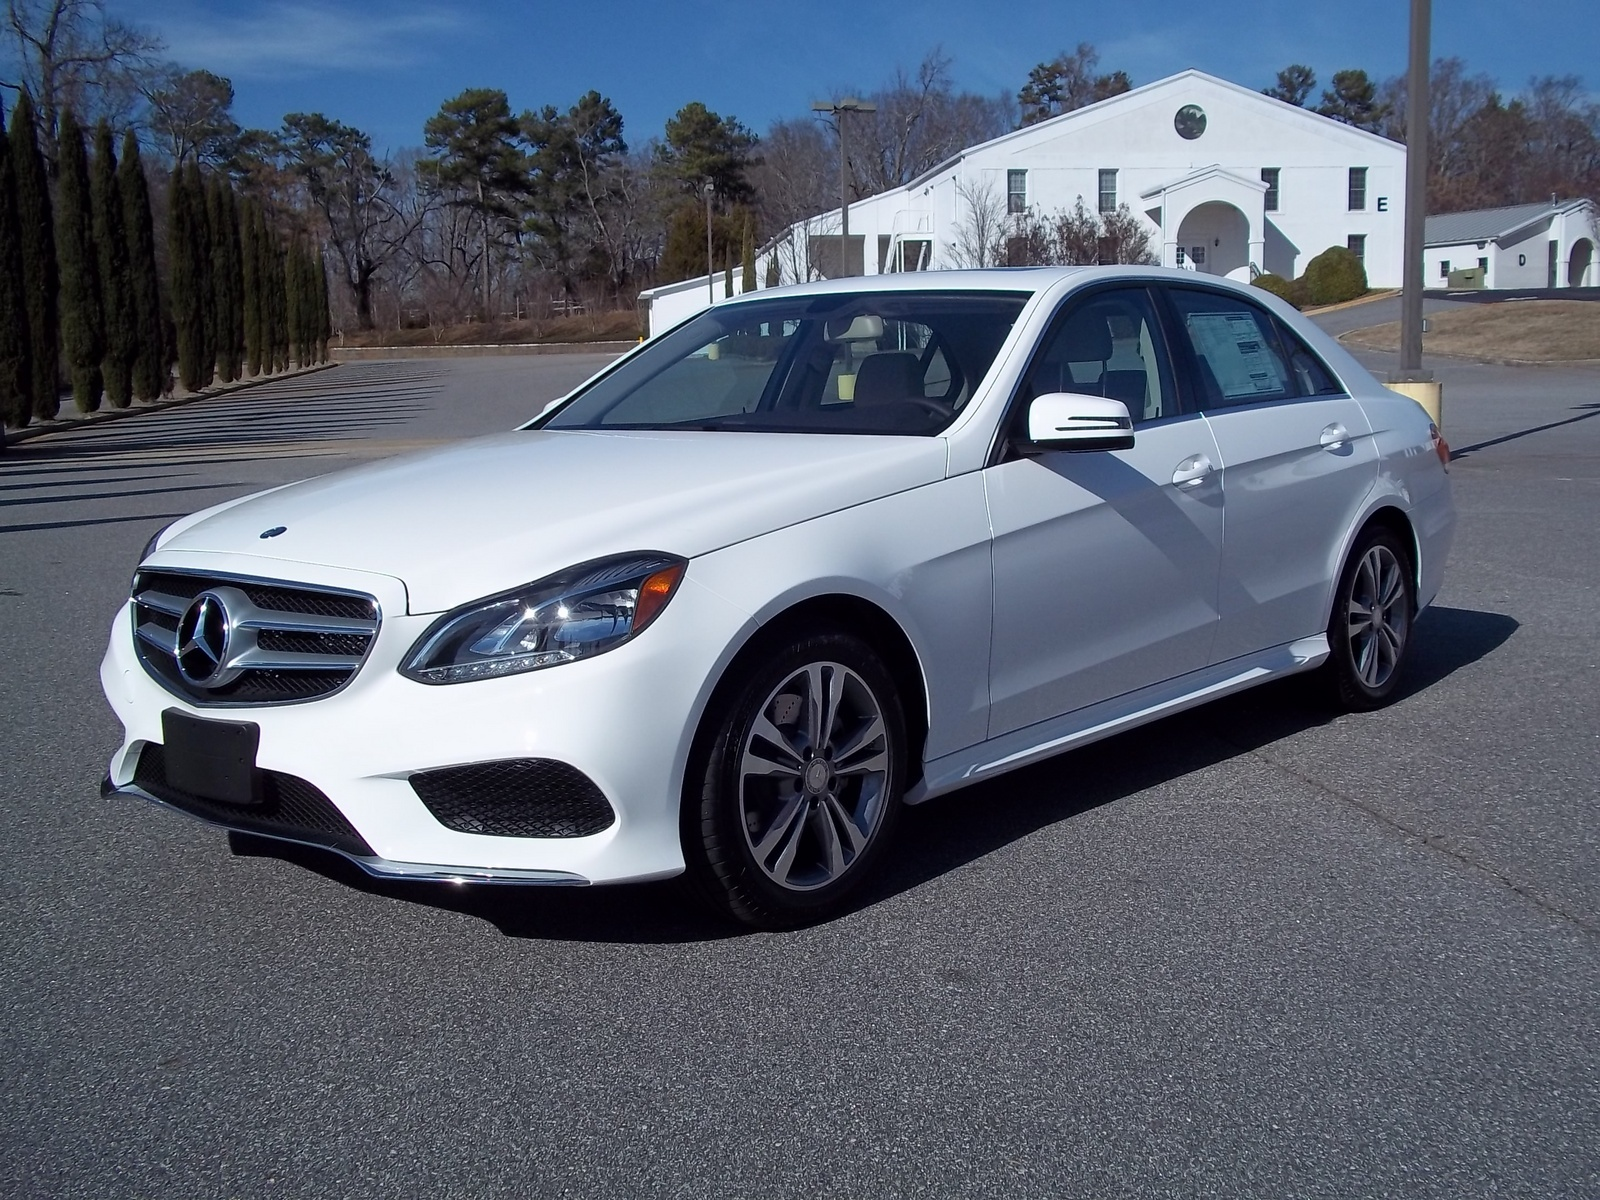 New 2015 2016 mercedes benz e class for sale cargurus for Mercedes benz for sale cargurus